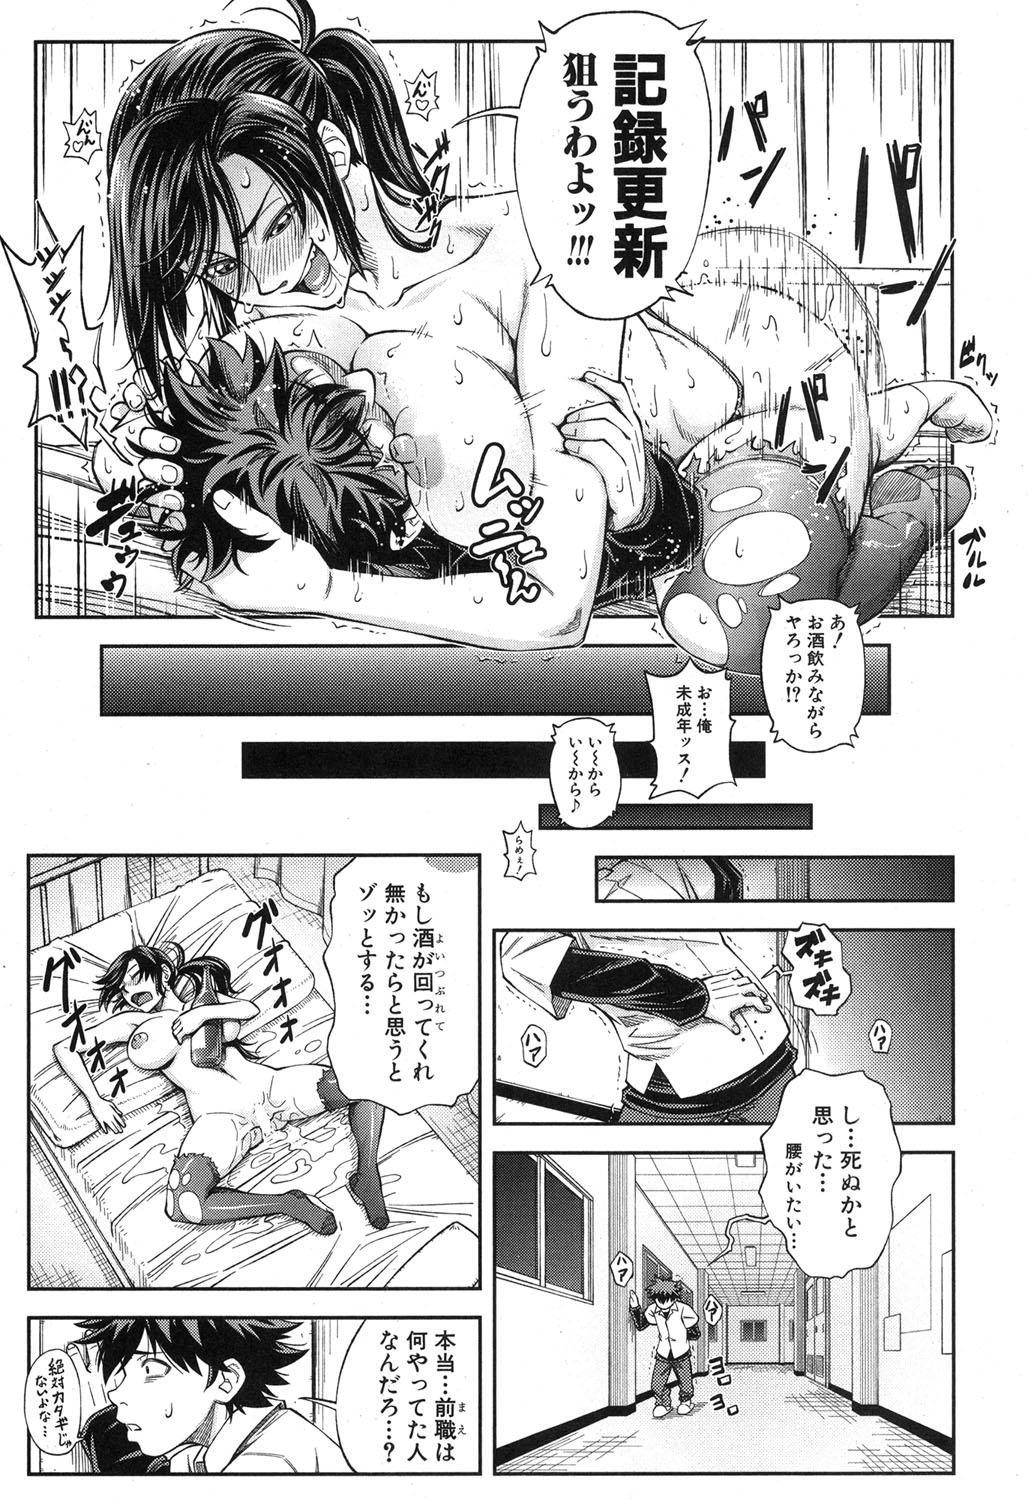 BUSTER COMIC 2015-11 27